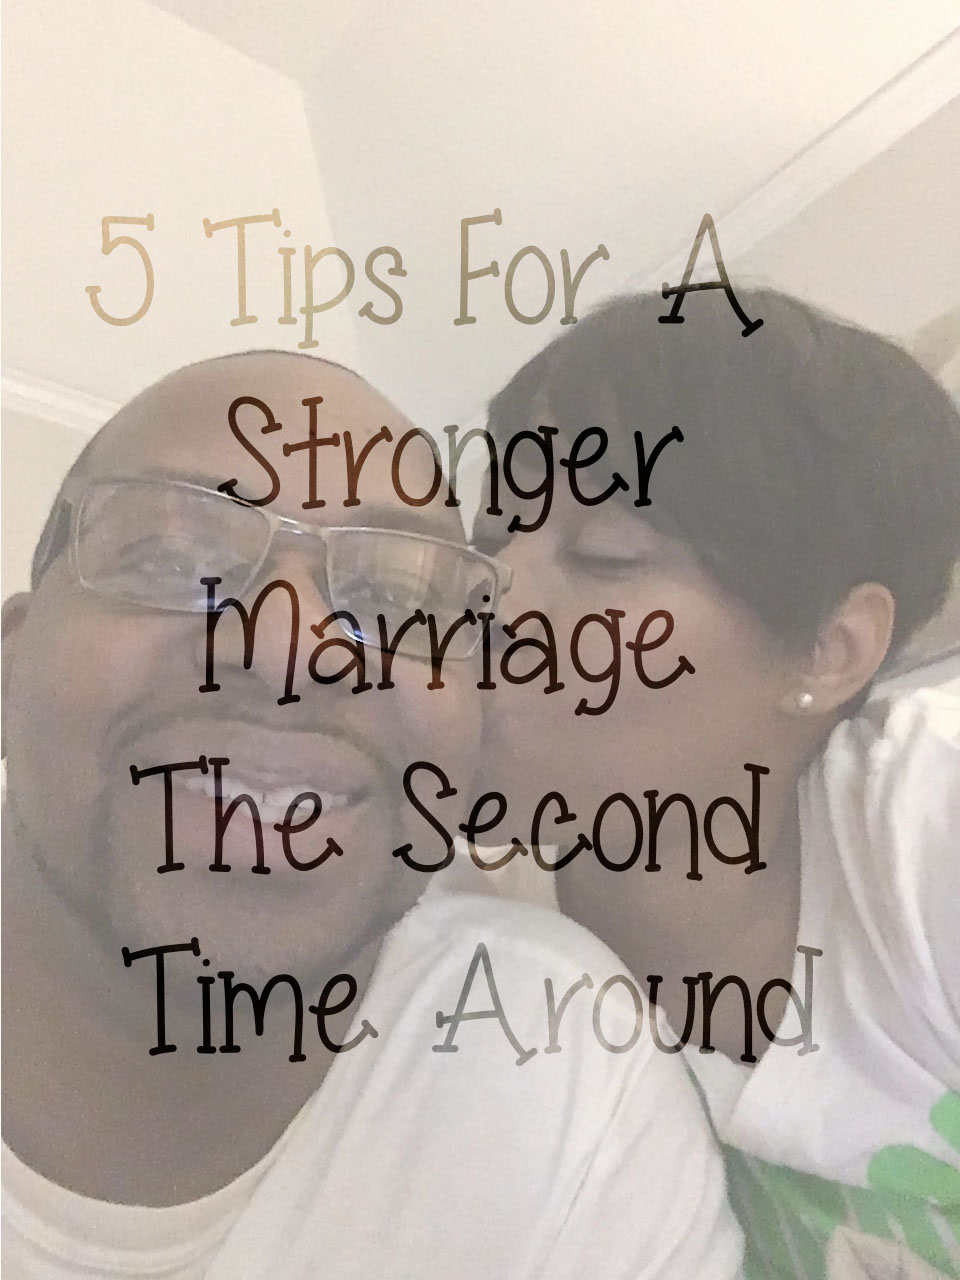 5 Tips We Learned The Second Time Around For A Stronger Marriage…